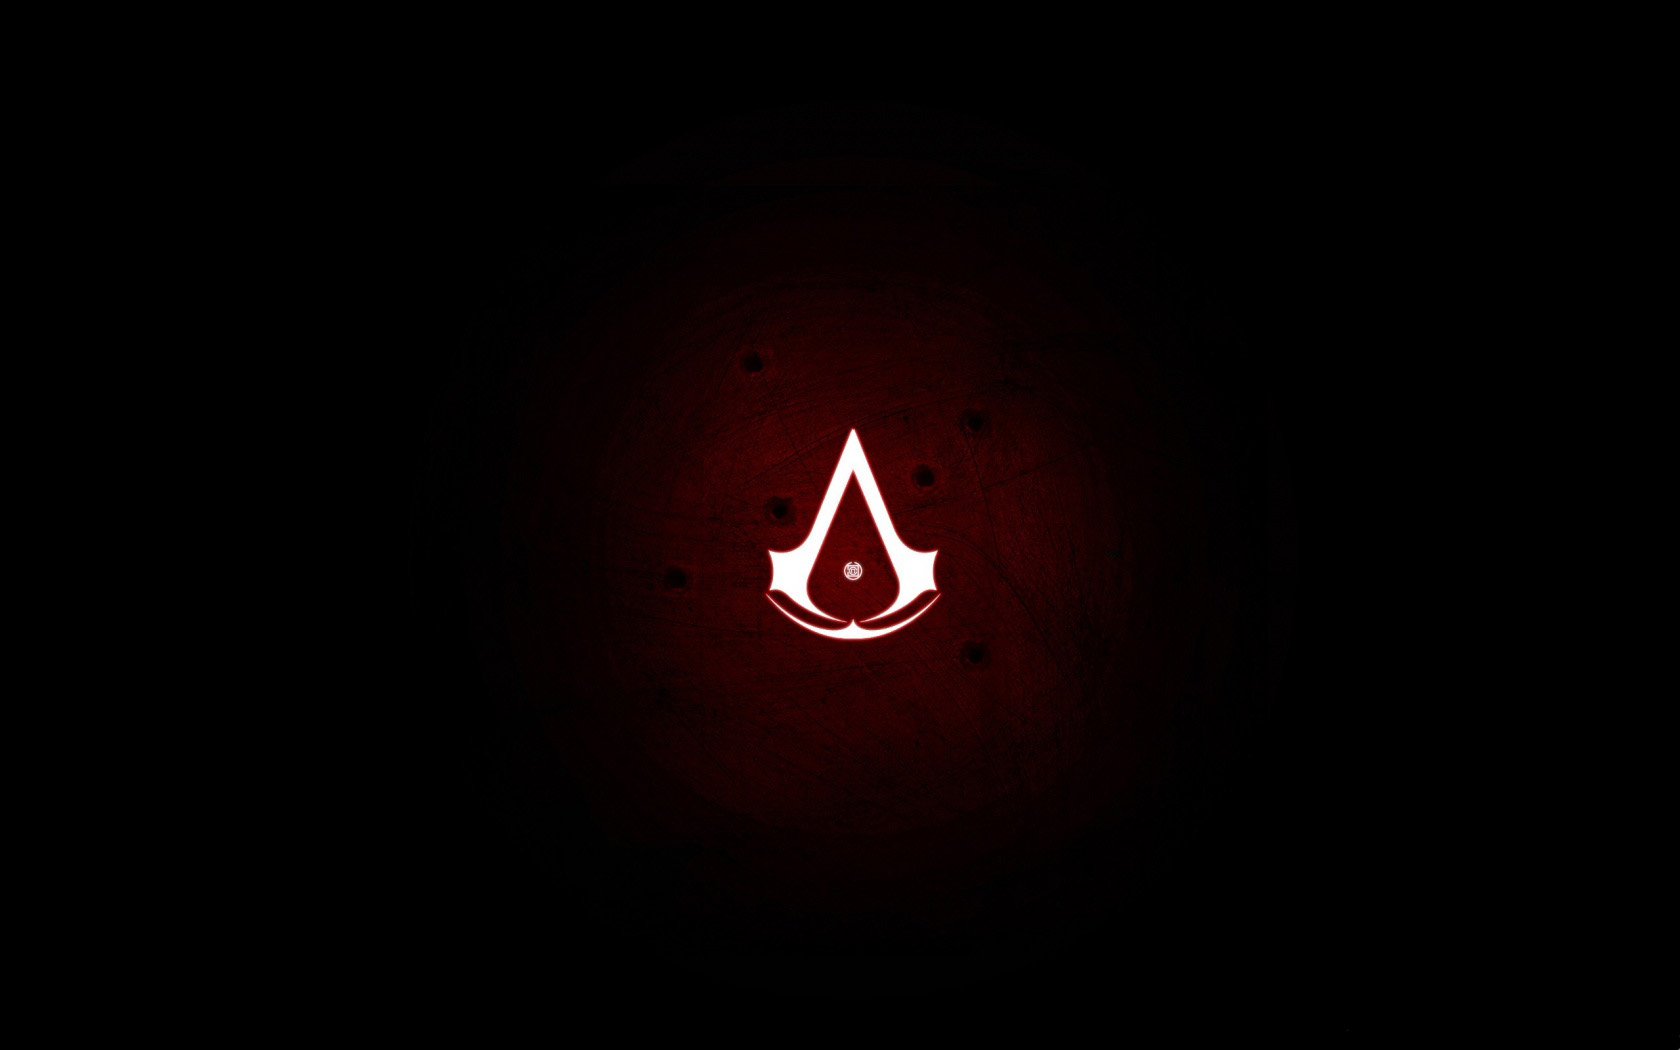 Assassins Creed 2 Logo 5398 Hd Wallpapers in Logos   Imagescicom 1680x1050